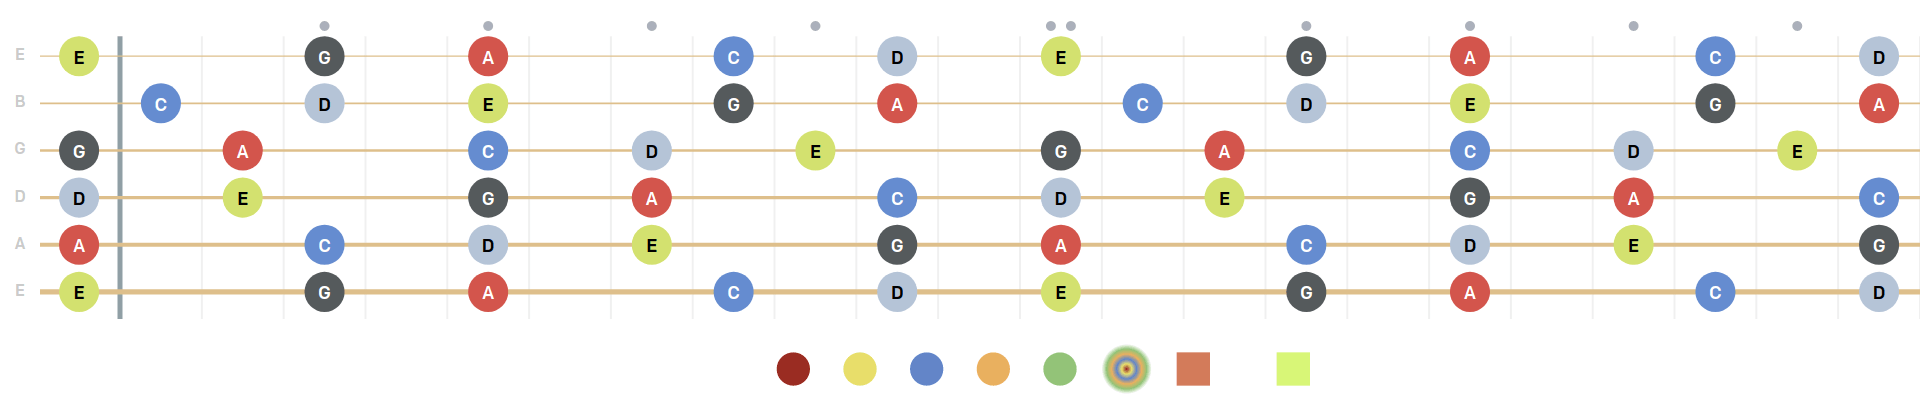 pentatonic minor scale diagram without shapes